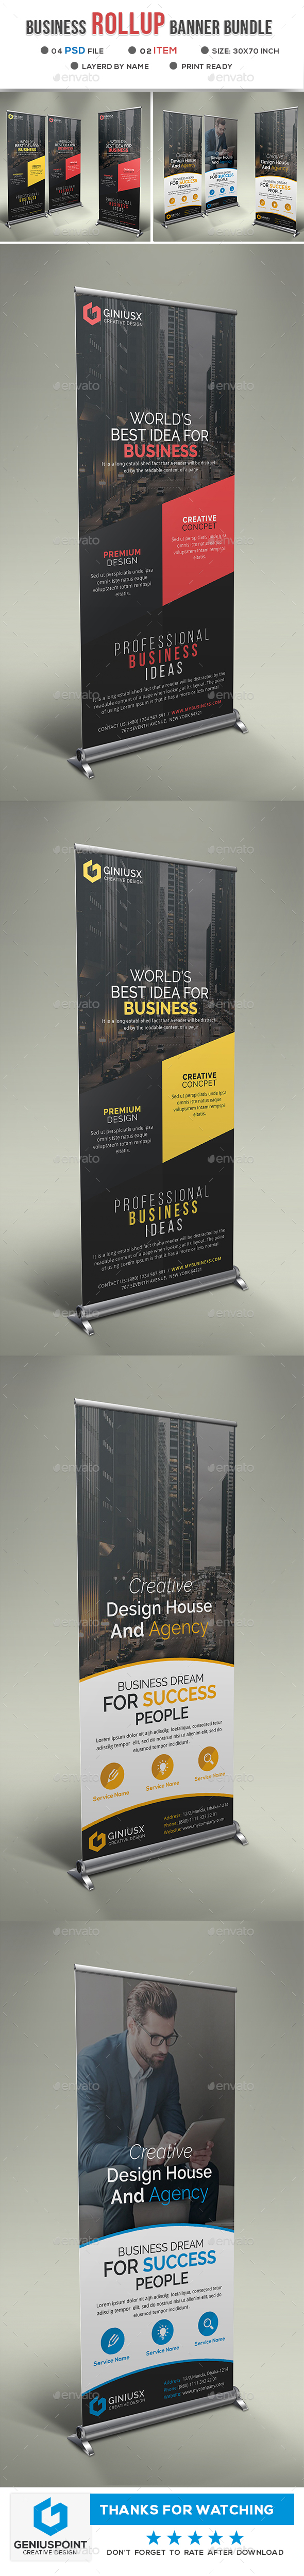 Business Roll Up Banner Bundle - Signage Print Templates